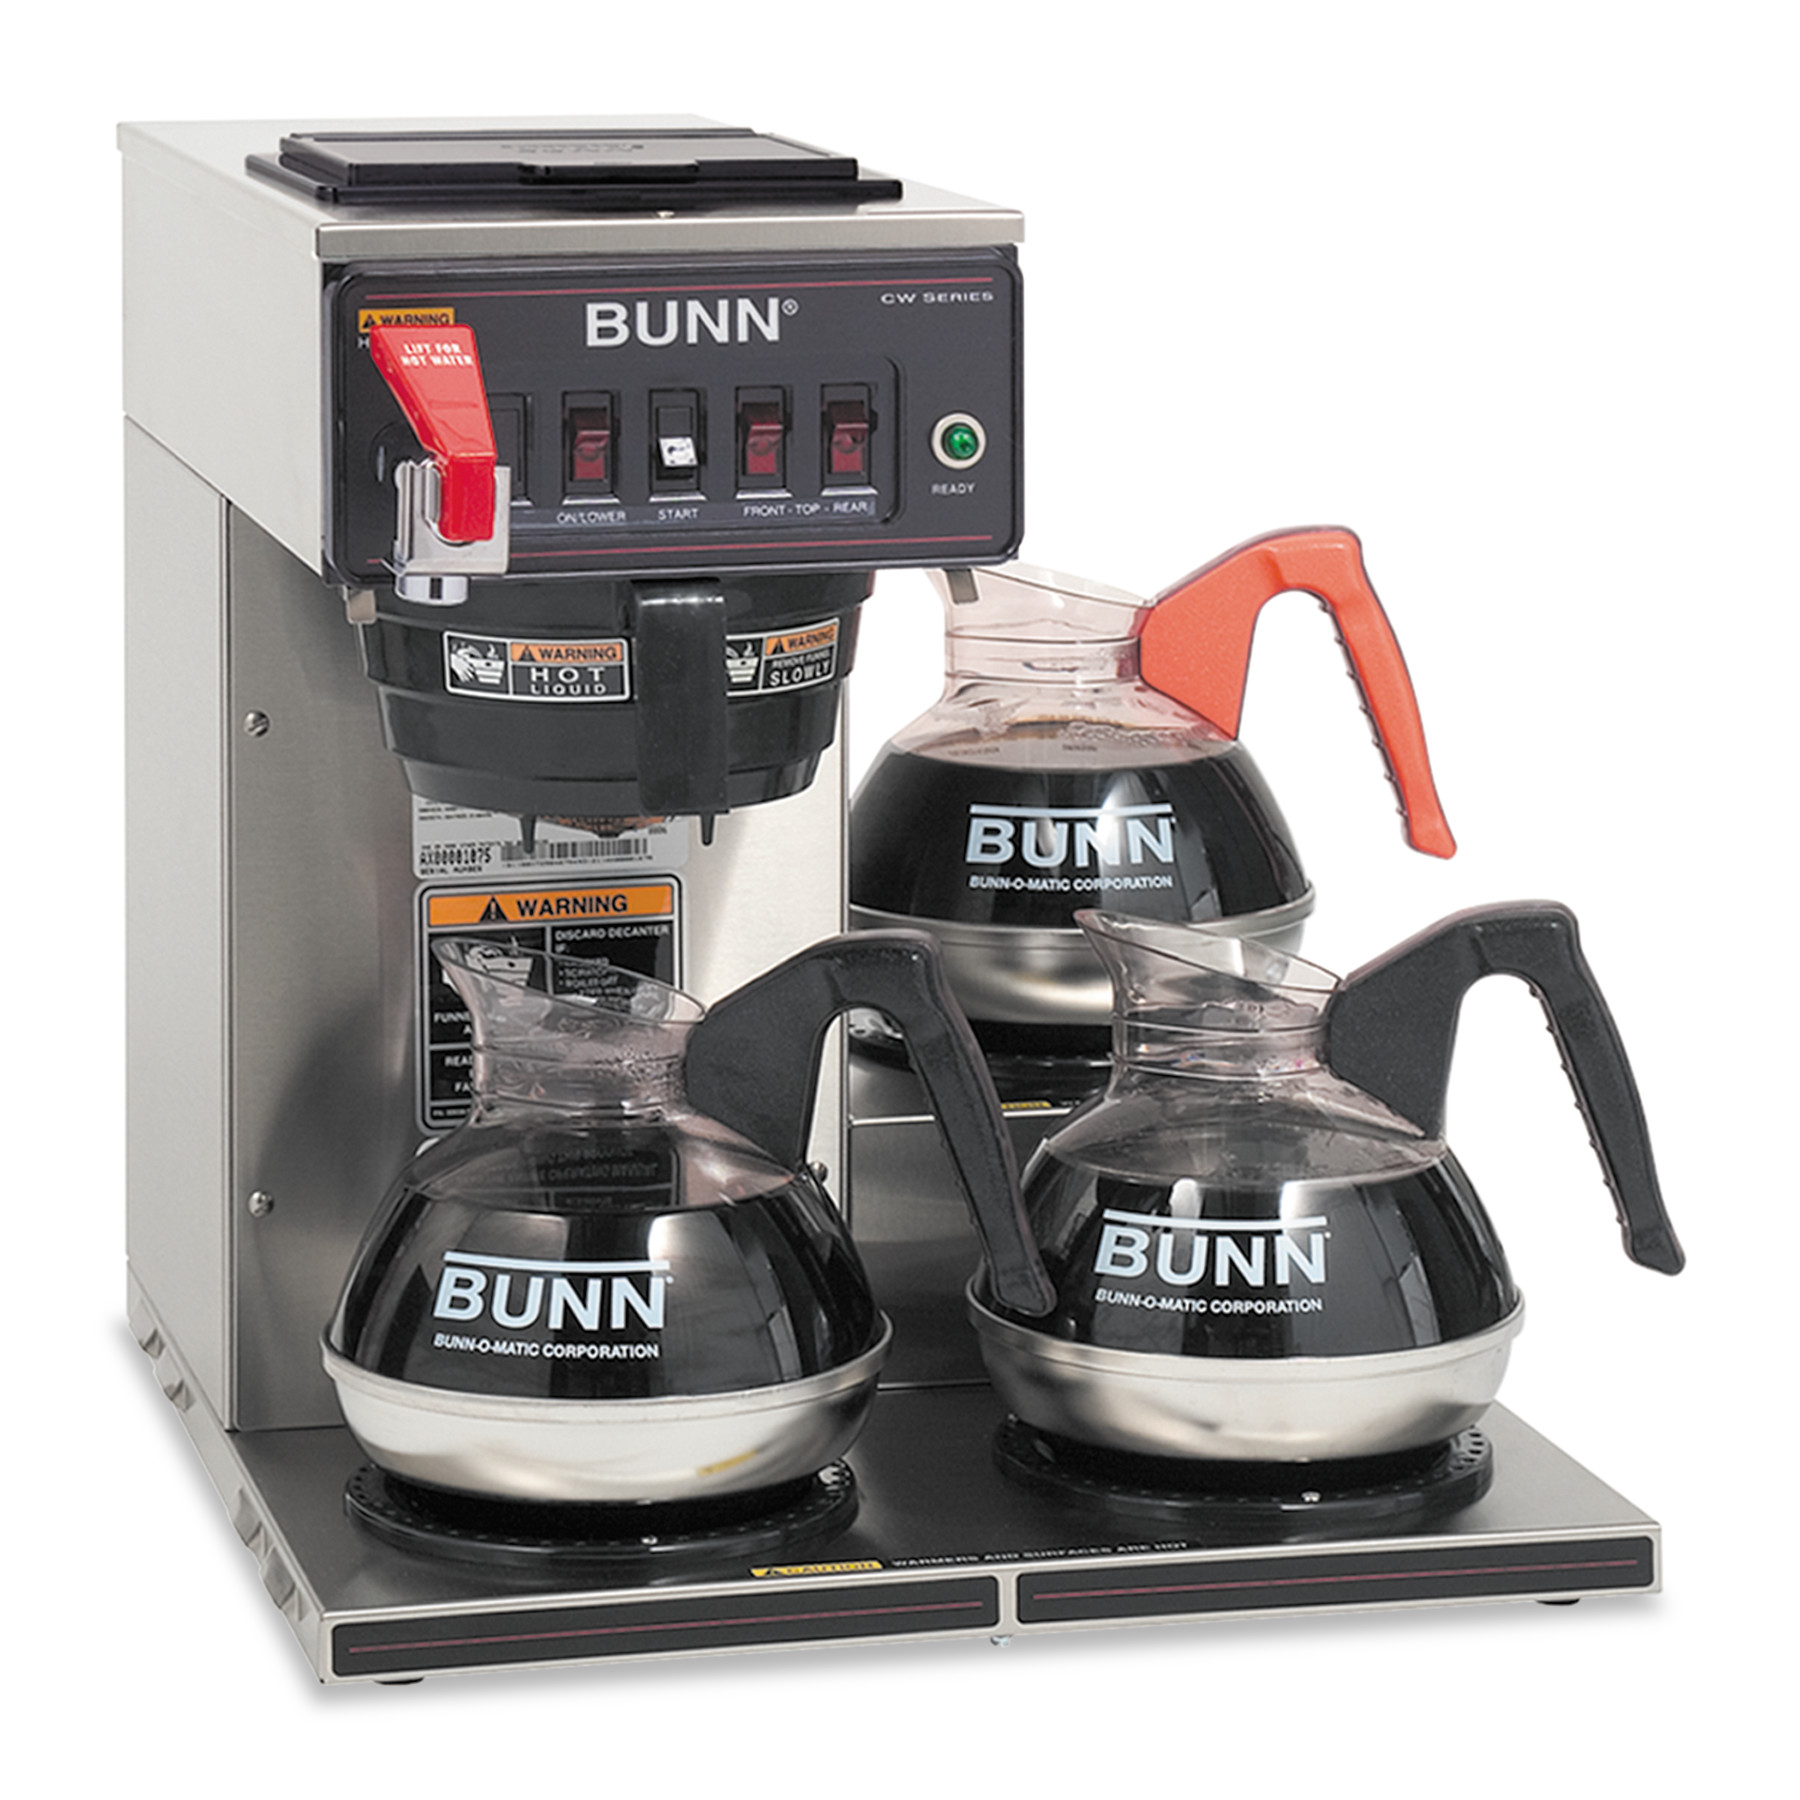 BUNN CWTF15-3 3L, 12-Cup Automatic Commercial Coffee Brewer, 3 Warmers